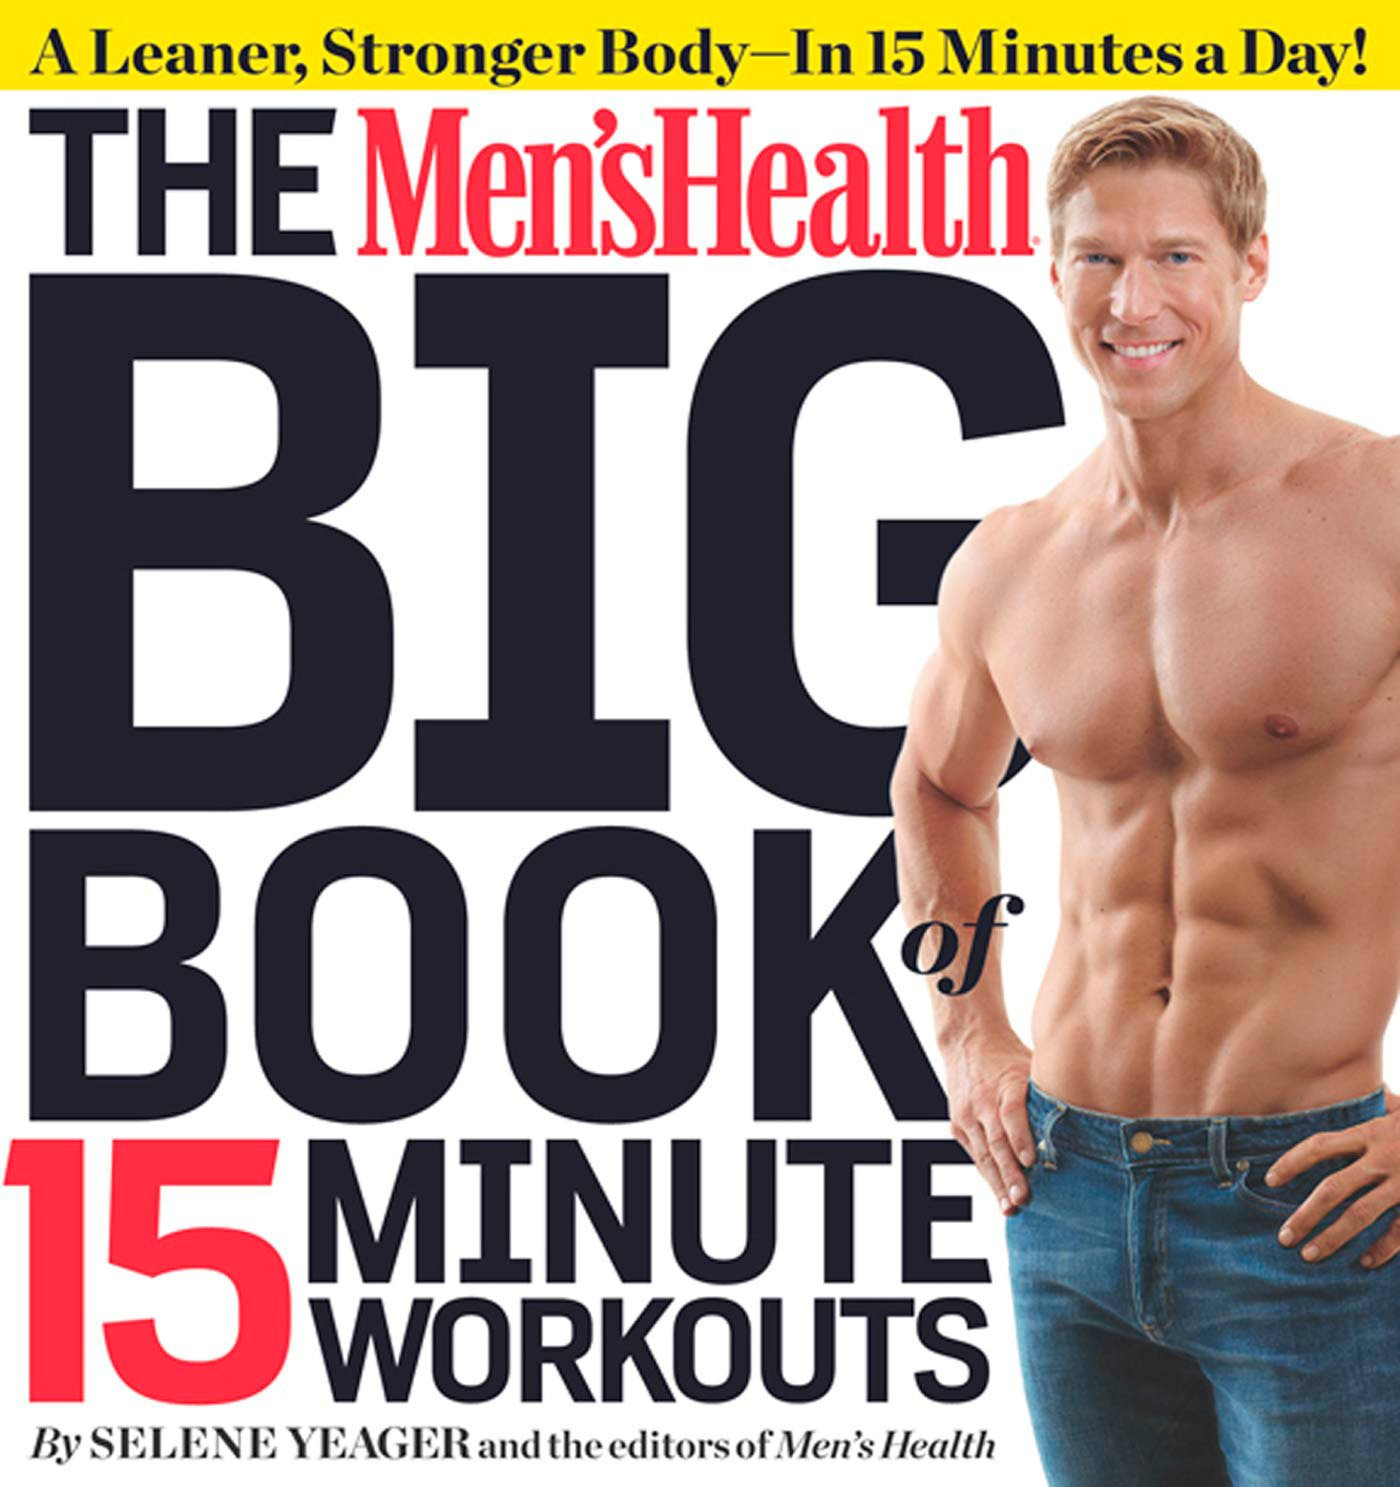 Download The Men's Health Big Book of 15-Minute Workouts: A Leaner, Stronger Body--in 15 Minutes a Day! pdf